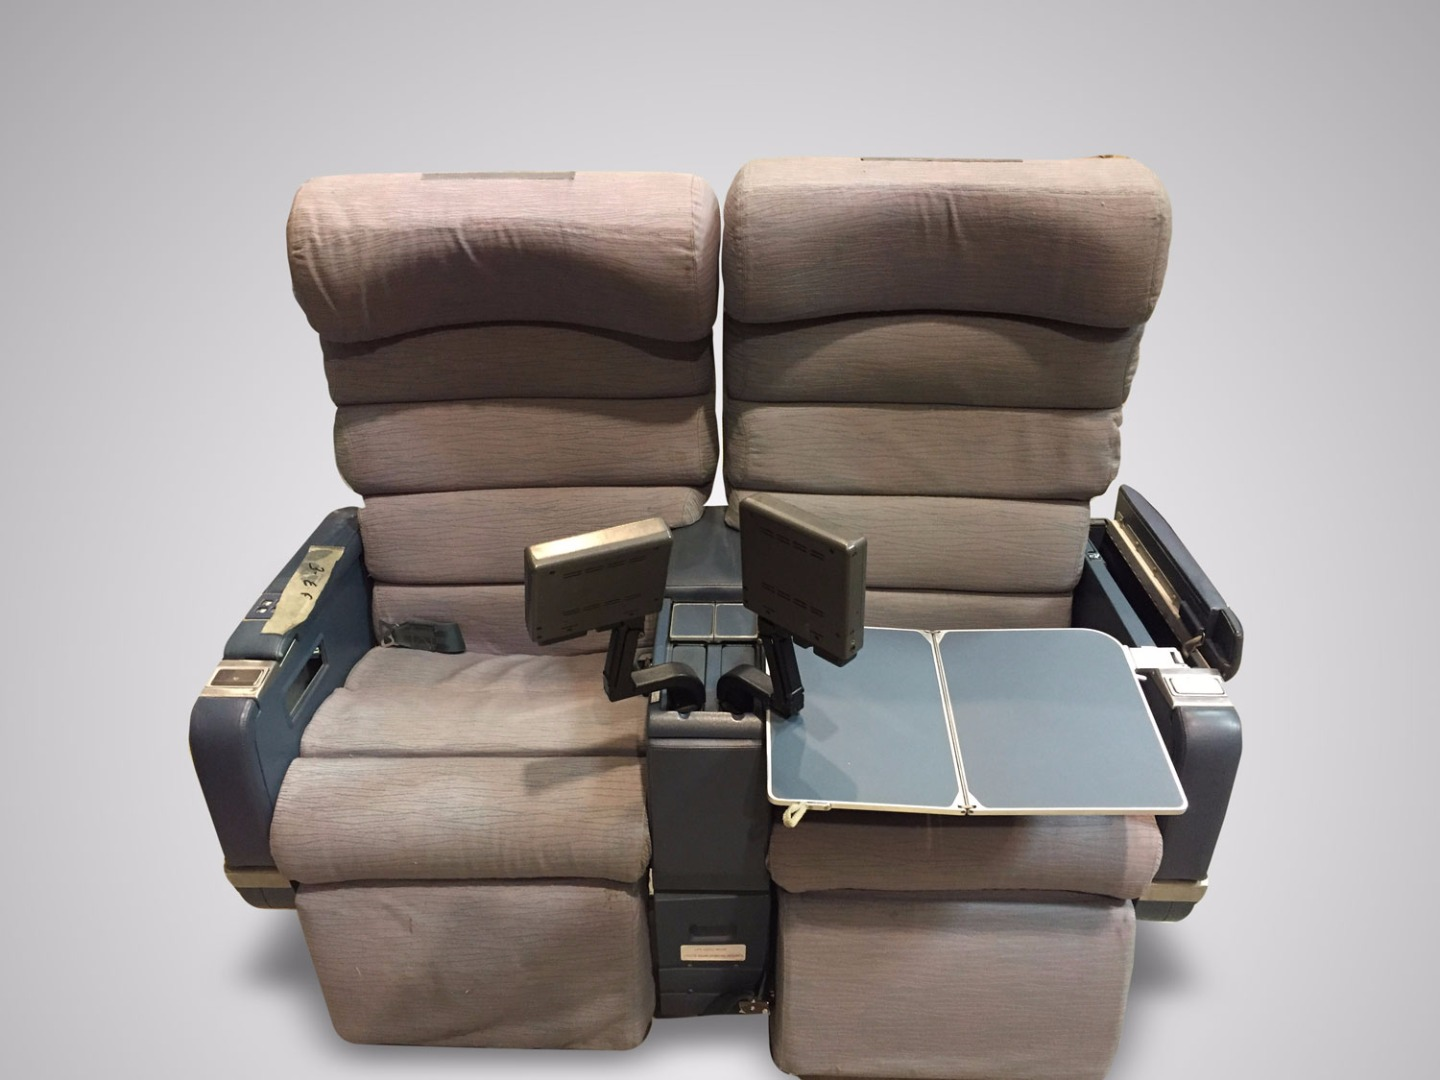 Double chair with TV from TAP airplane - 1